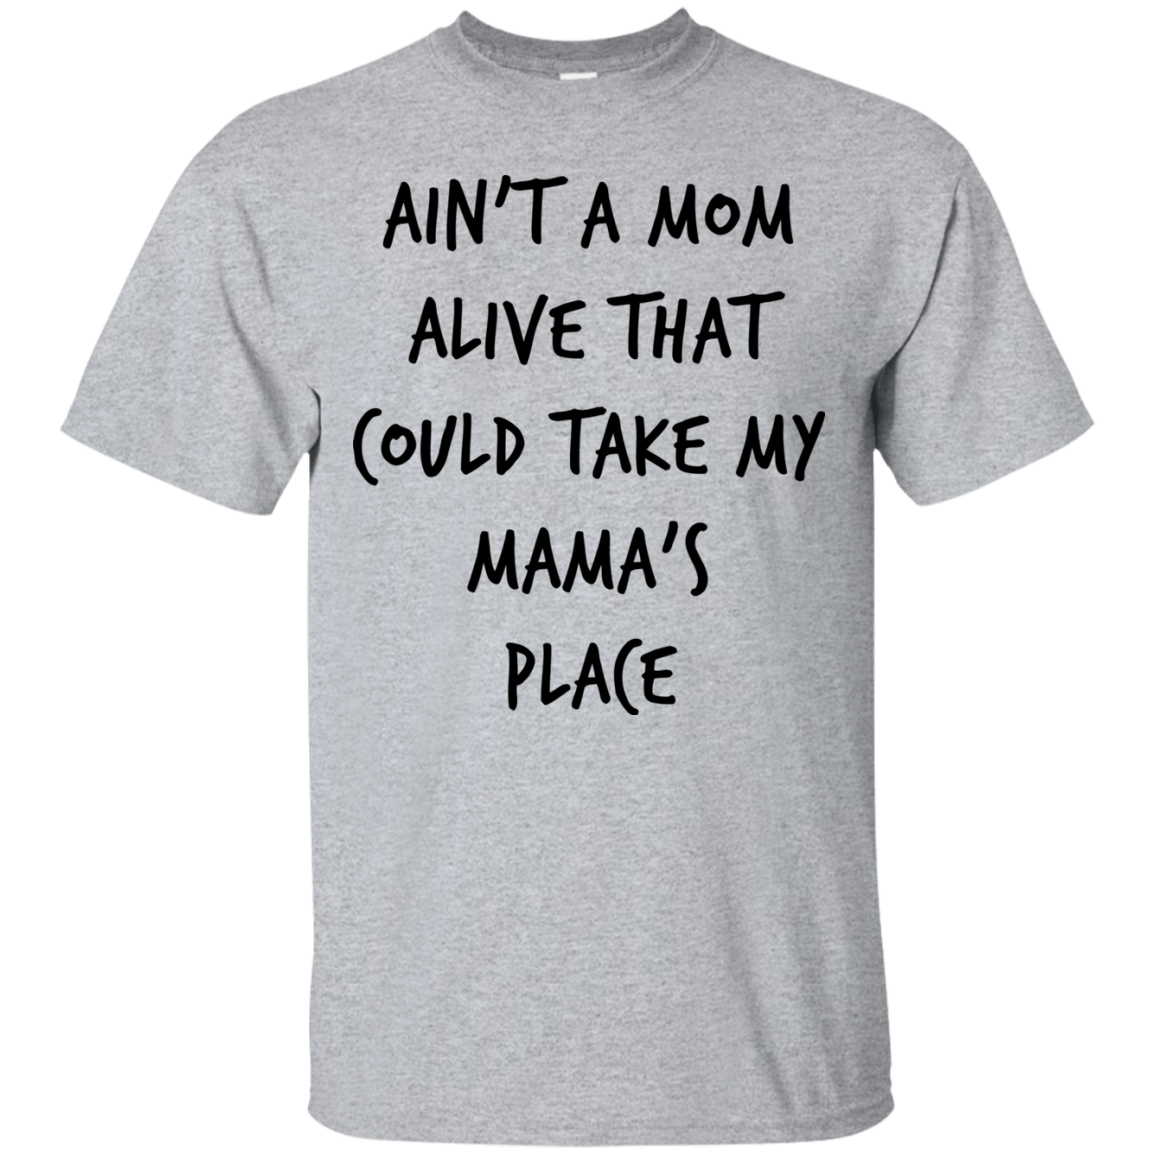 Ain't A Mom Alive That Could Take My Mama's Place T shirt hoodie sweater Men